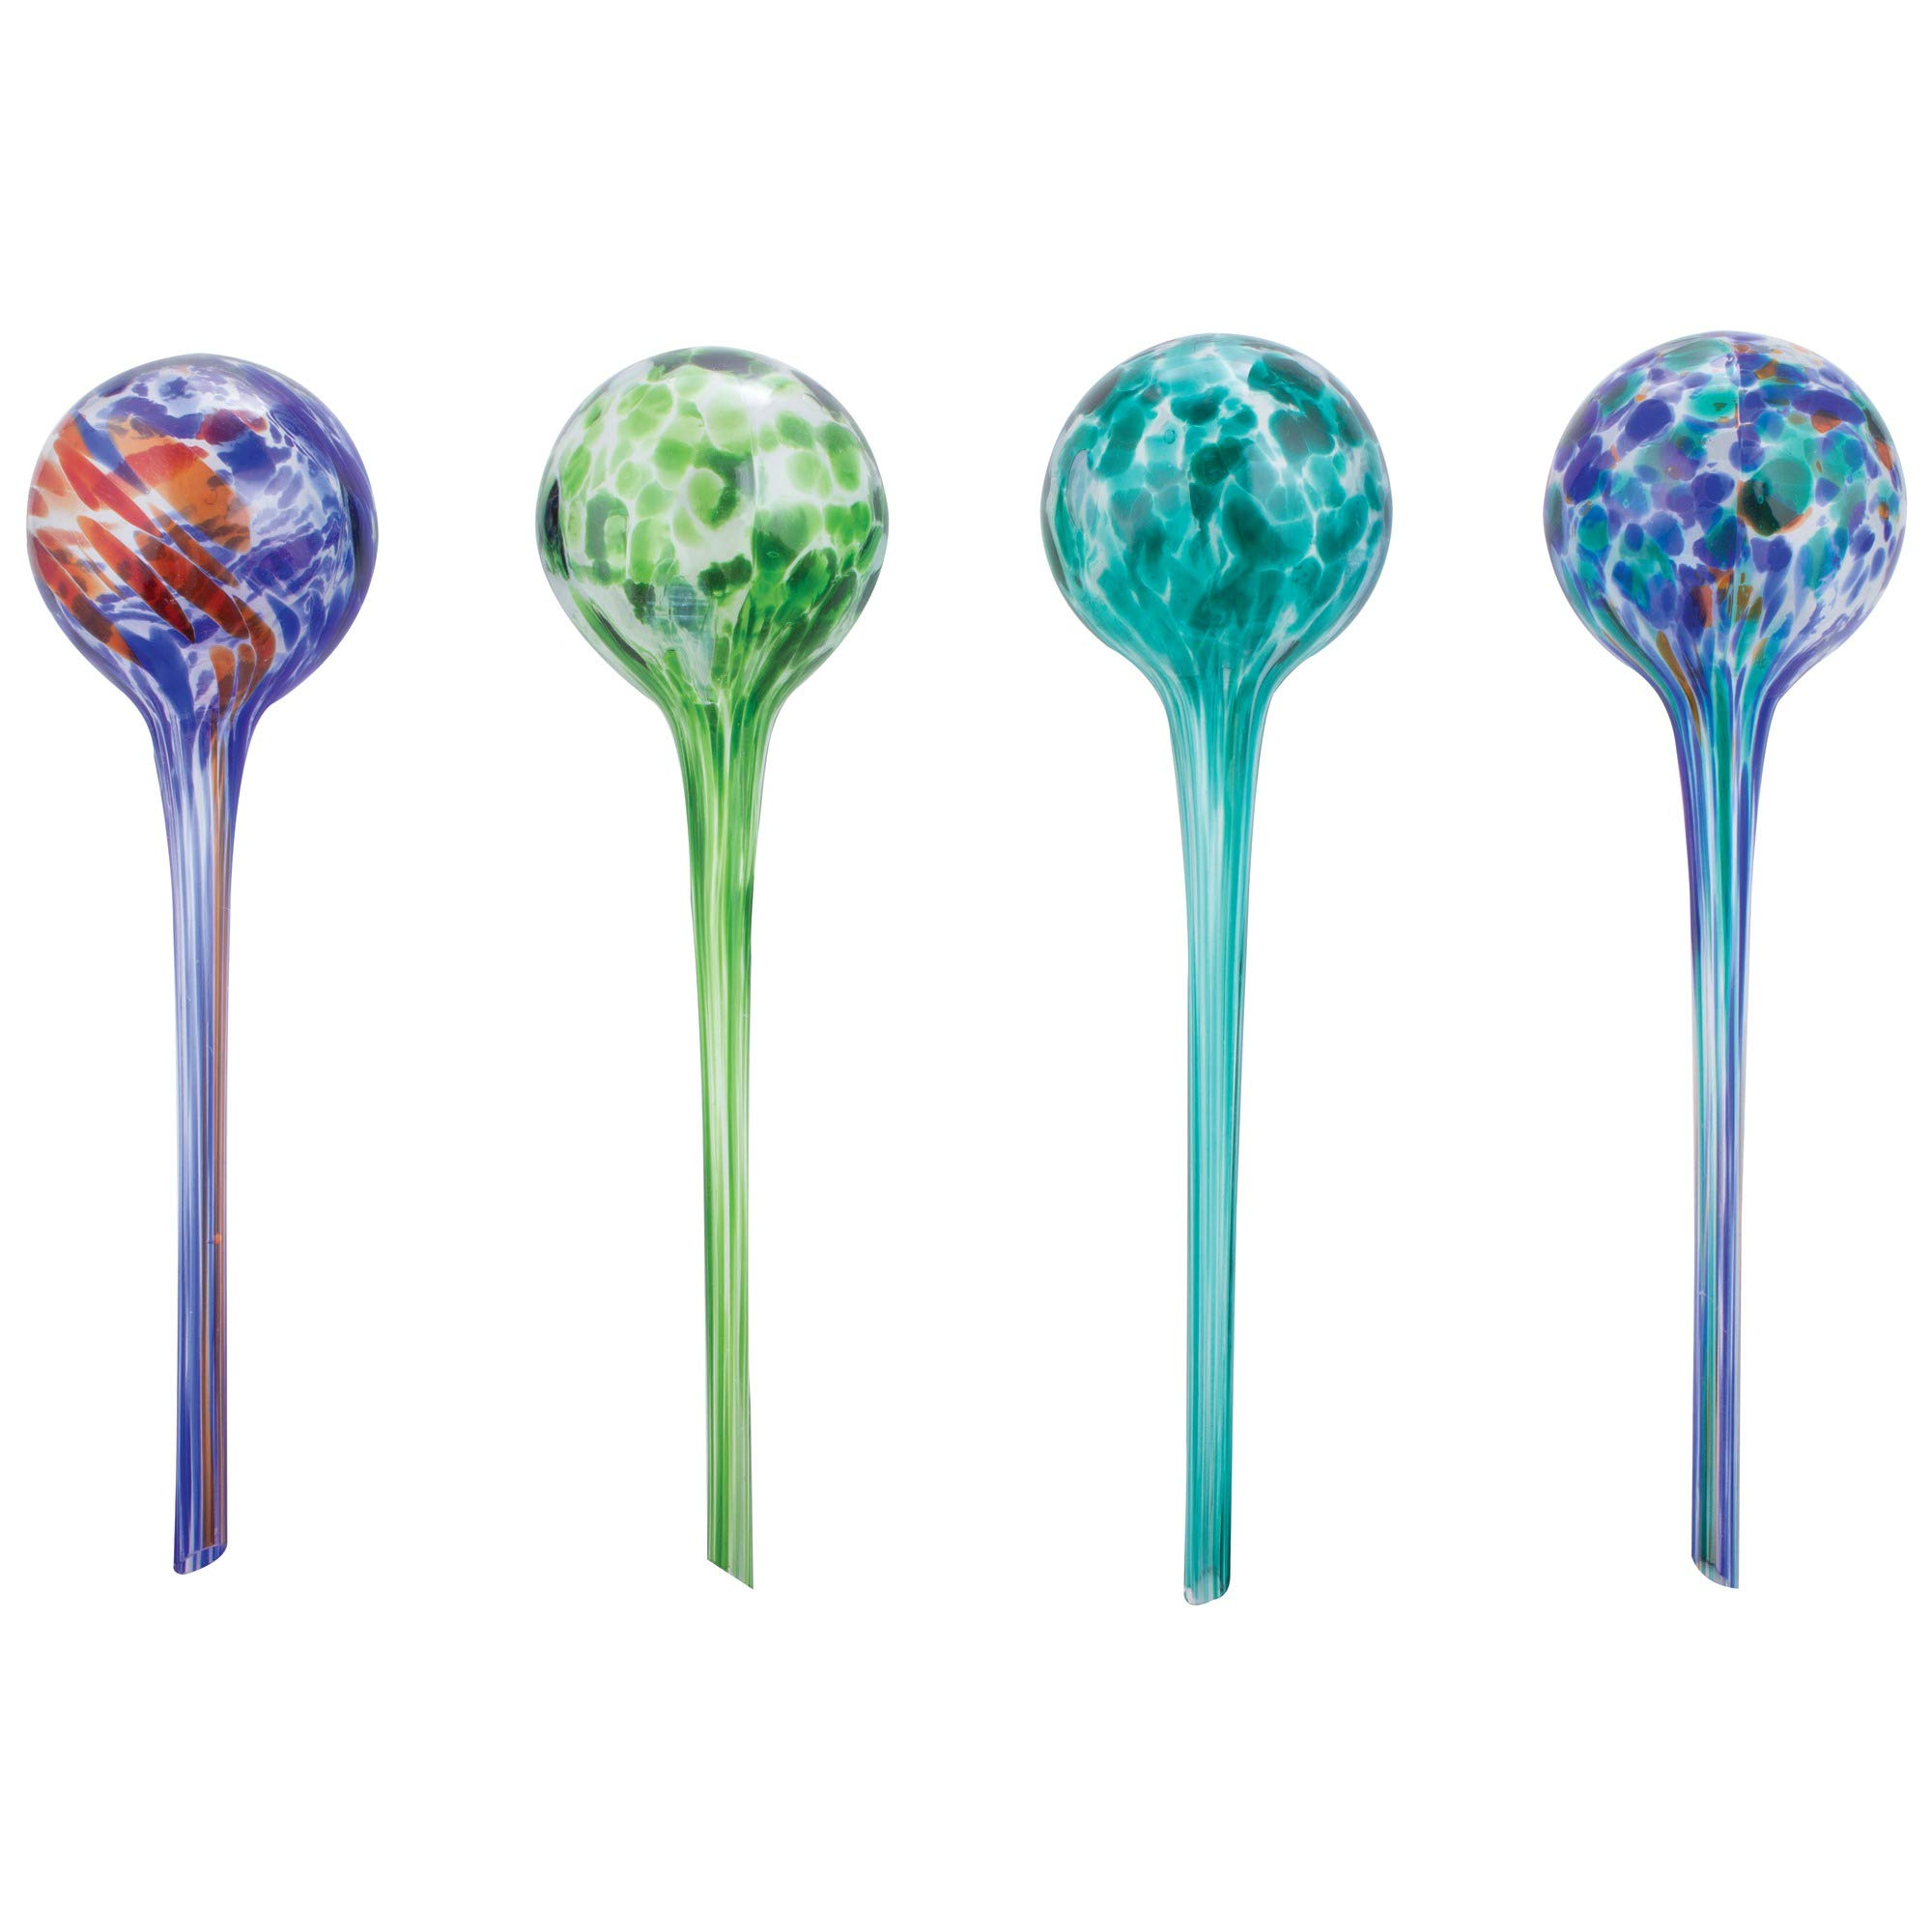 Wyndham House 4-Piece Watering Globe Set, Colorful Hand-Blown Glass Plant Watering System by Wyndham House